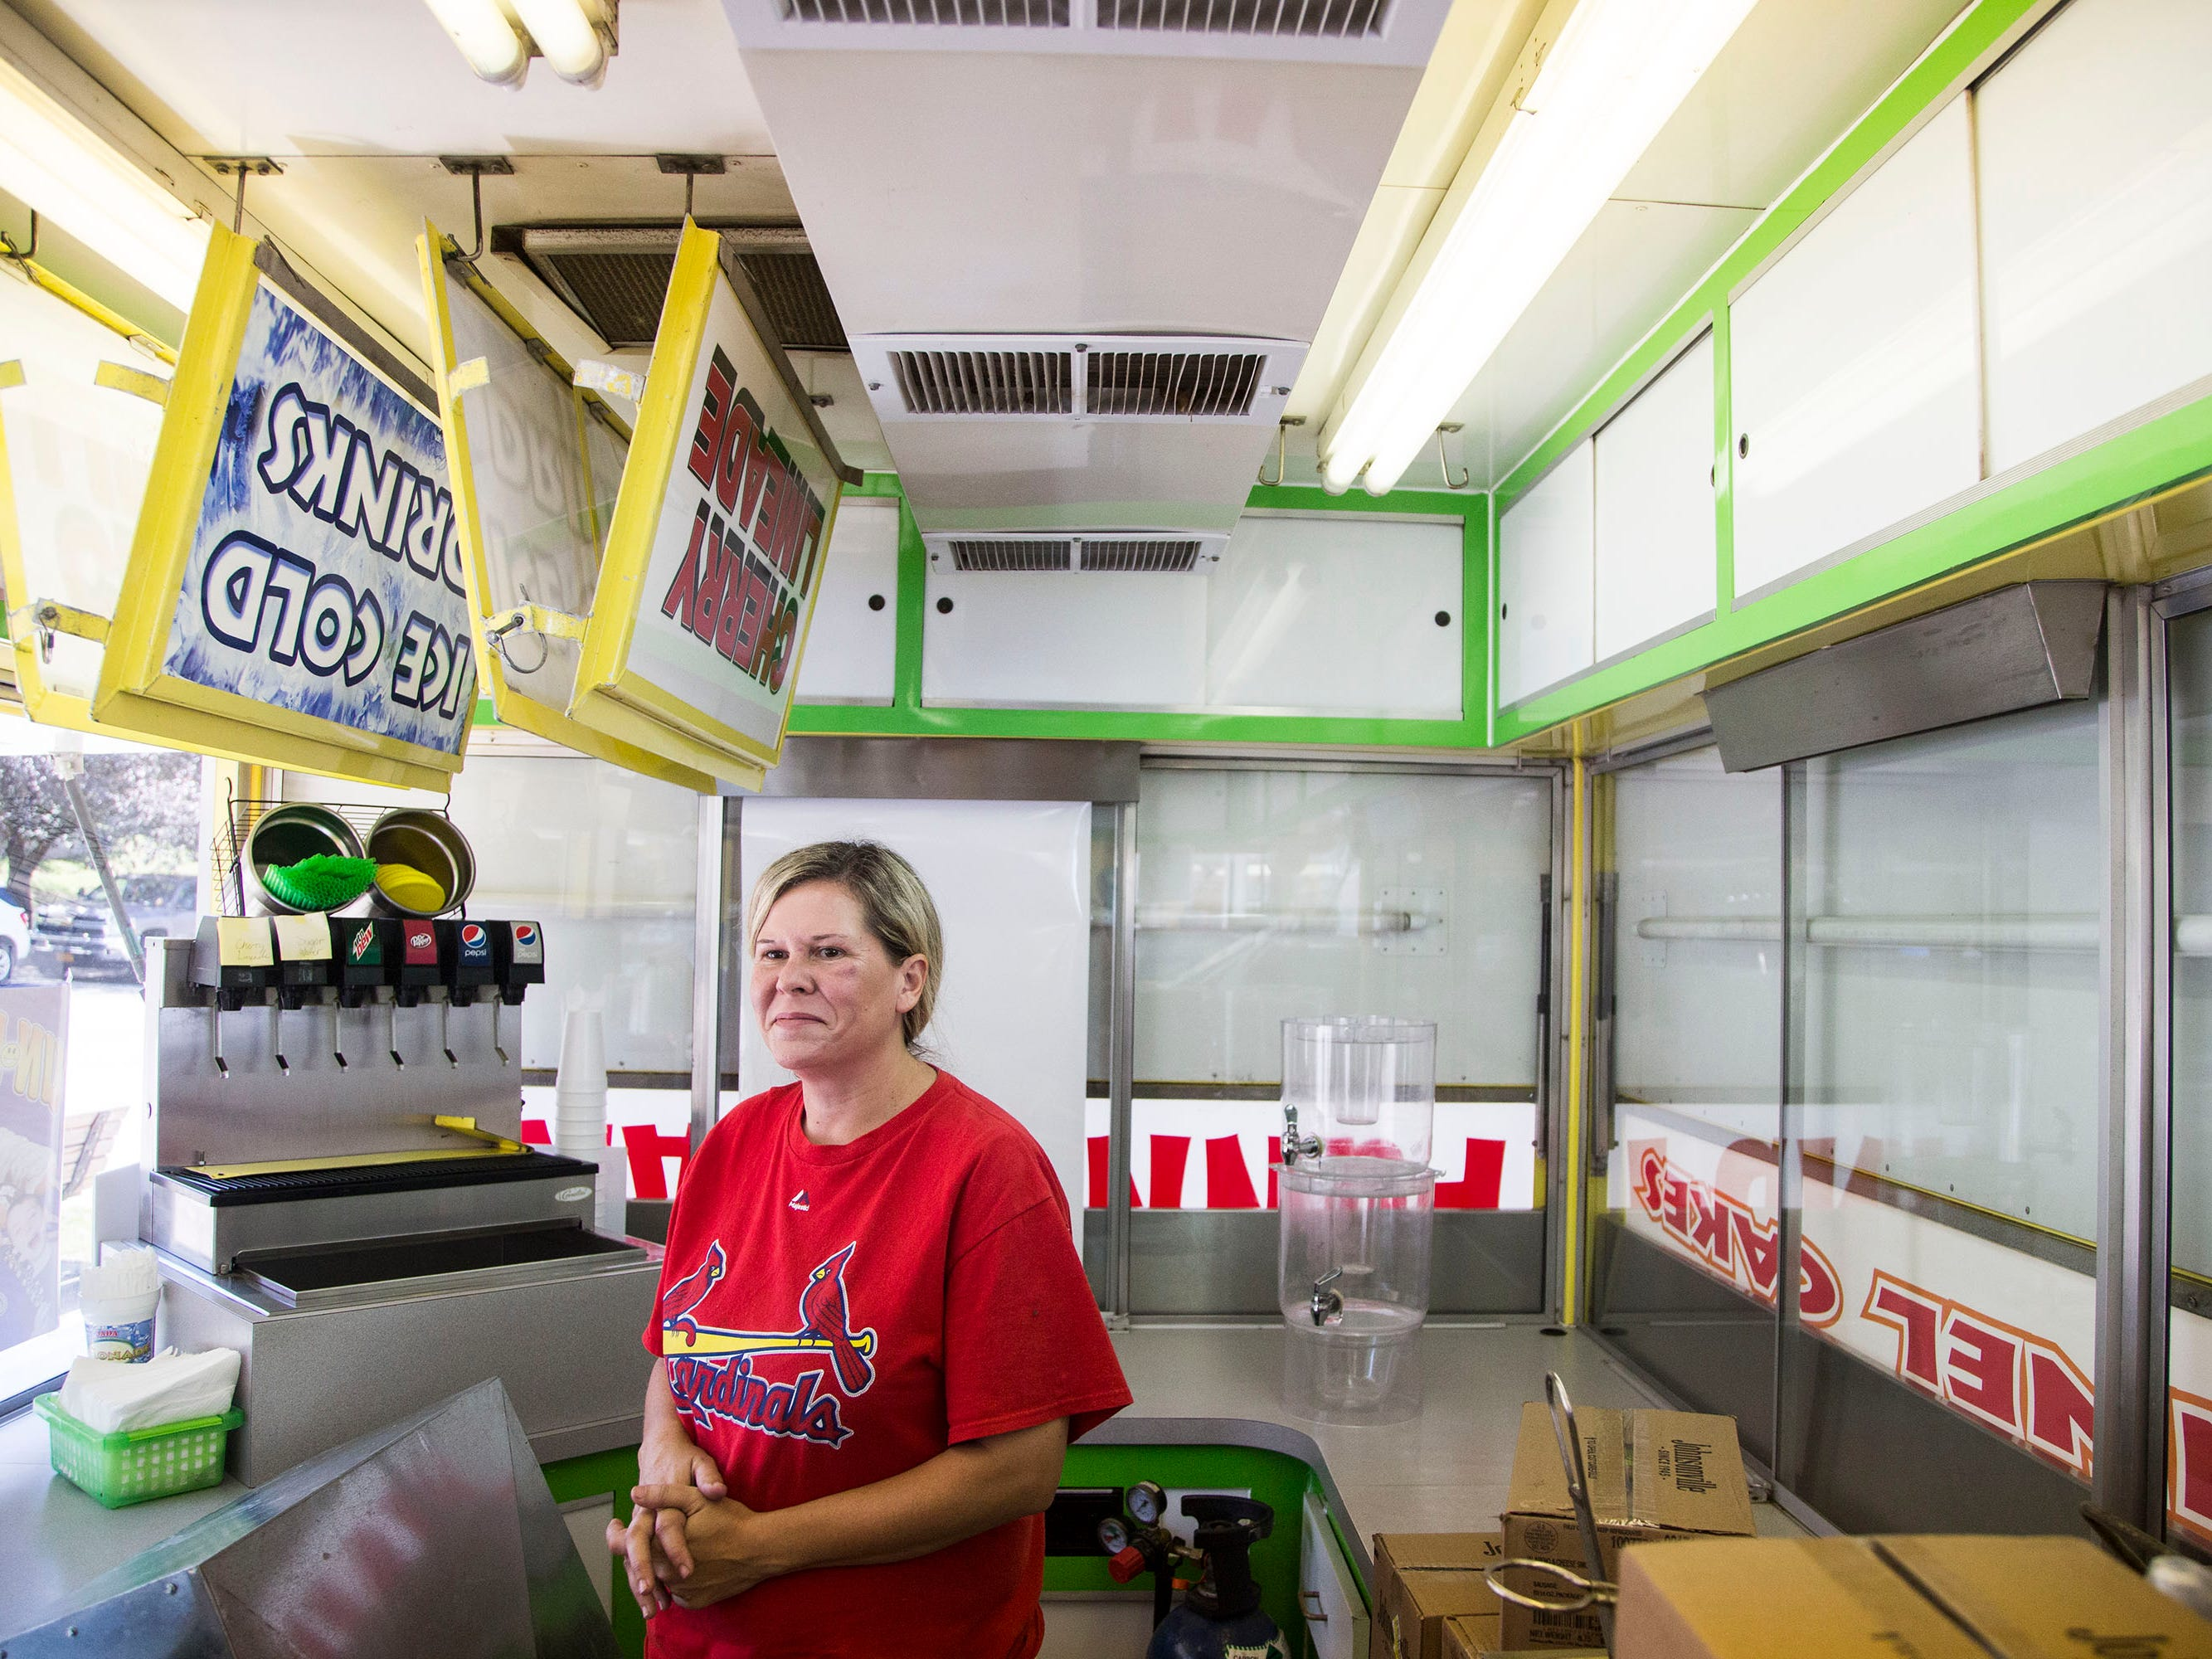 Jada Smith, owner of Jada Concessions, stands inside her funnel cake trailer on the Iowa State Fairgrounds on Wednesday, Aug. 8, 2018, the day before the fair begins. This is Smith's first time back at the fair selling her family's funnel cakes since 1997, the year after her parents were murdered at the fair.